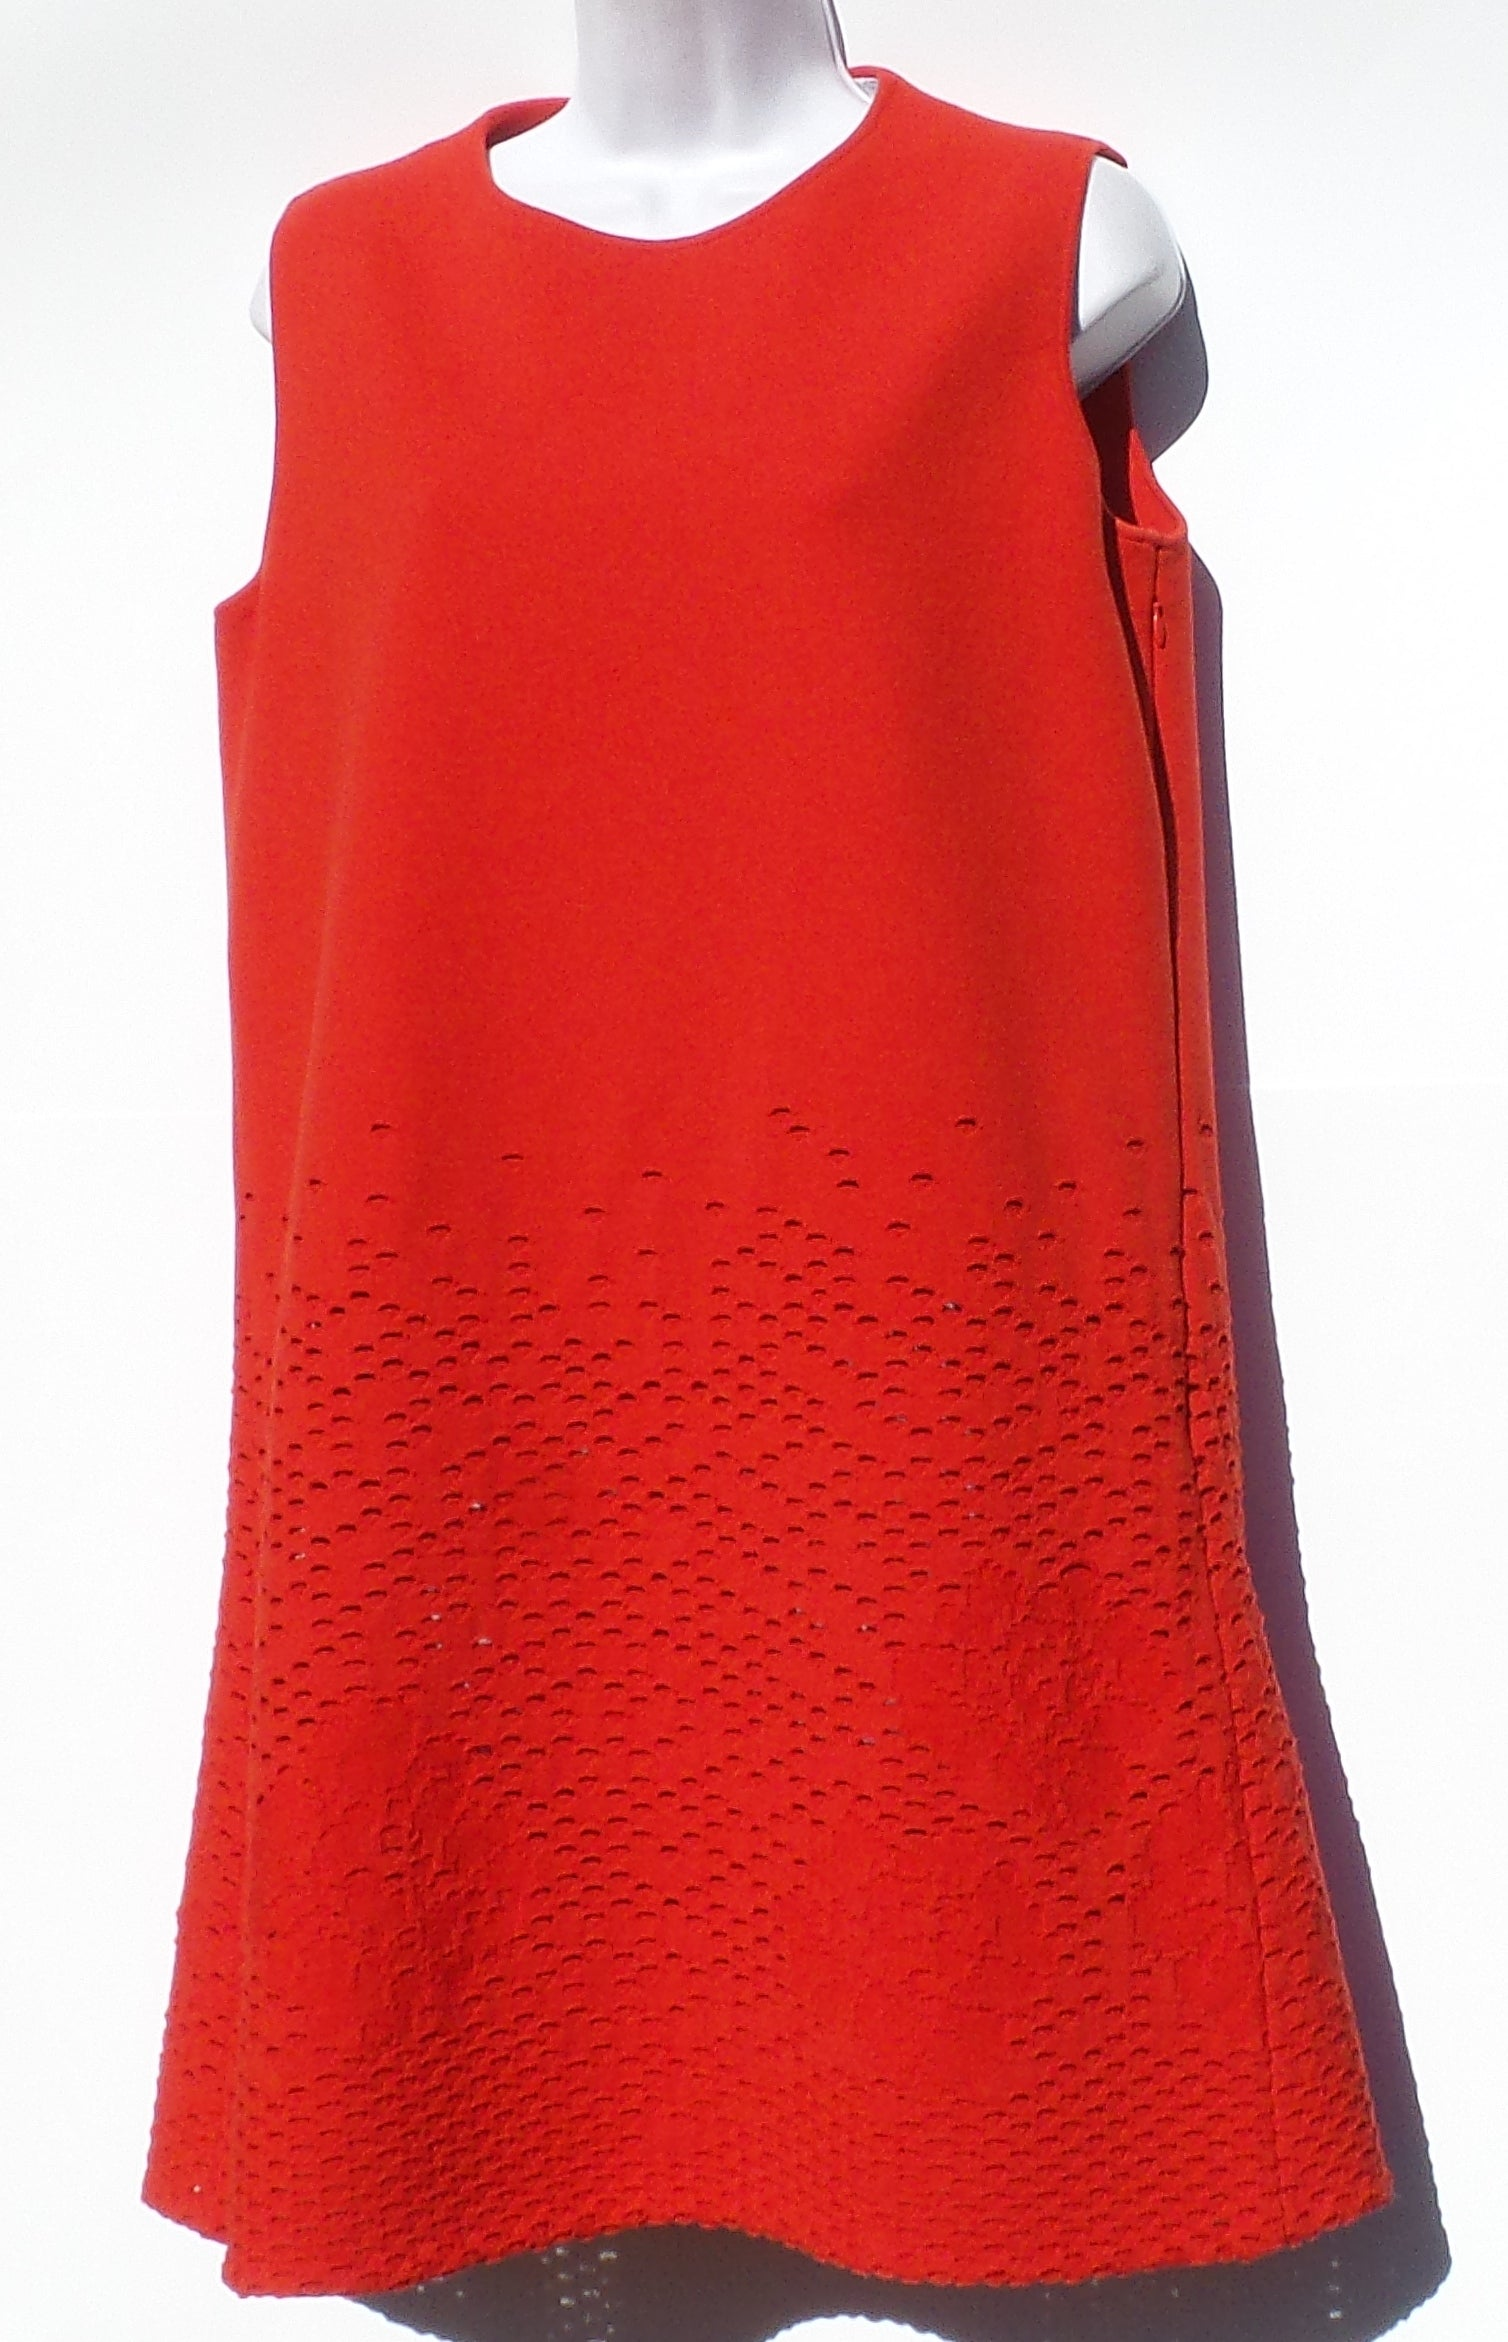 CHRISTIAN DIOR Red Floral Brocade Cut Out Wool Knit Sleeveless Shift Dress 44 8